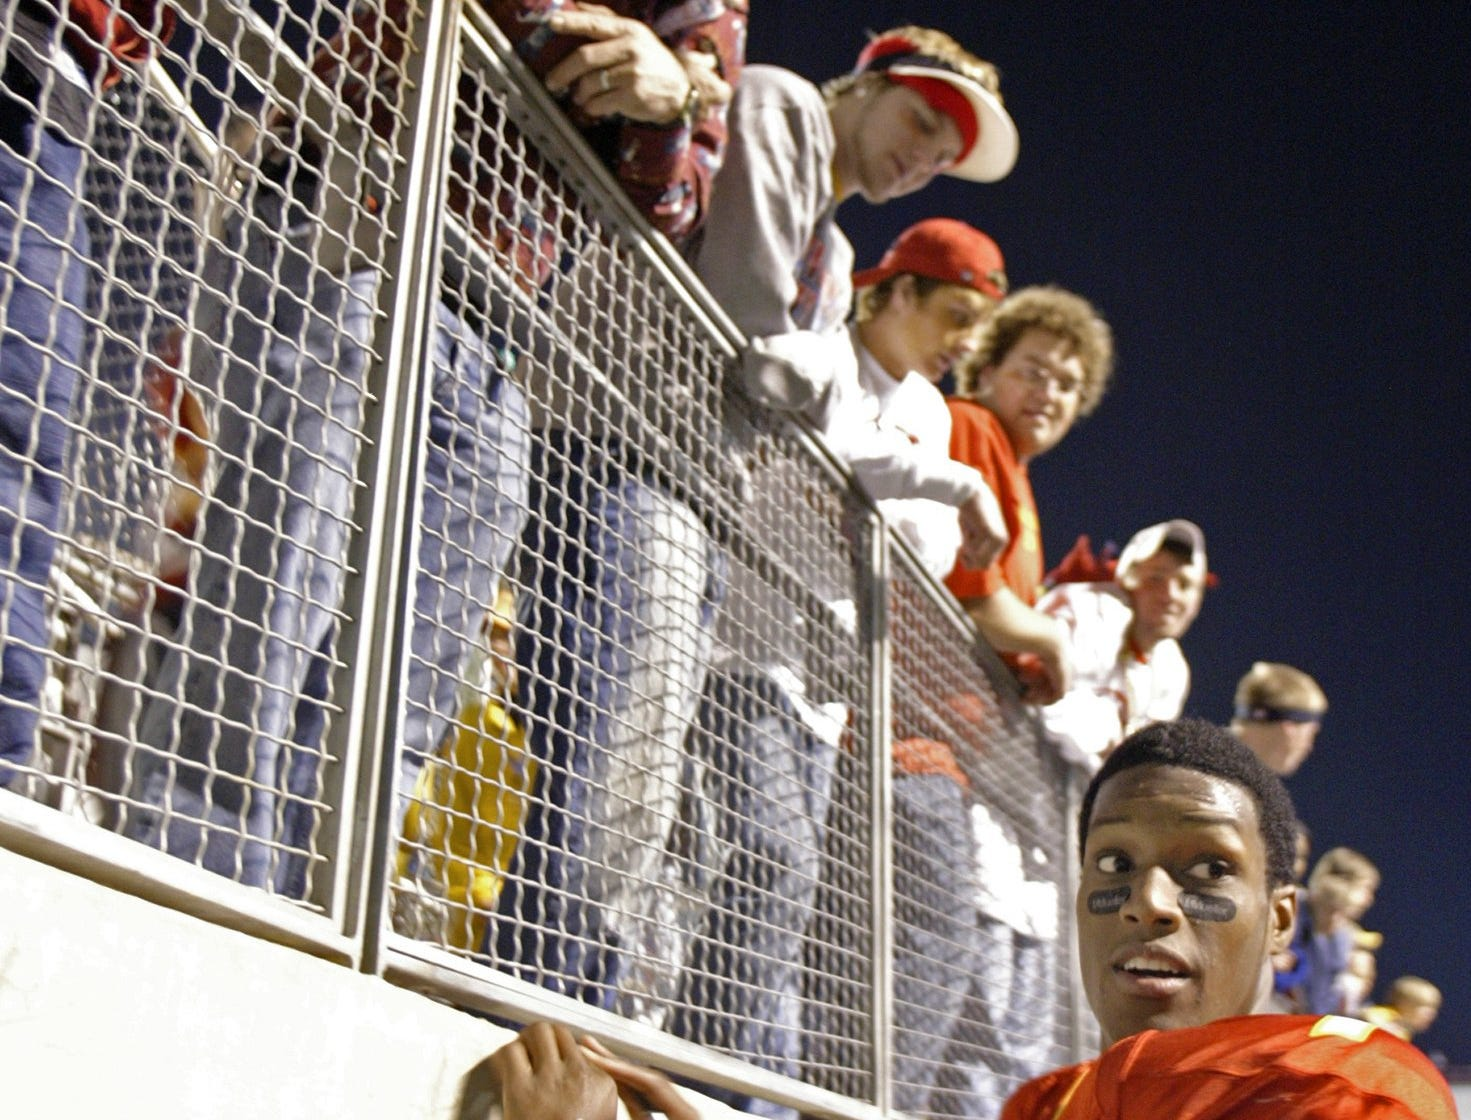 Iowa State quarterback Bret Meyer signs autographs on his way to the locker room after defeating Miami of Ohio, 17-13, in the 2004 Independence Bowl at Shreveport, Louisiana. Meyer, a freshman from Atlantic, earned offensive most valuable player honors after rushing for 122 yards and passing for 114.